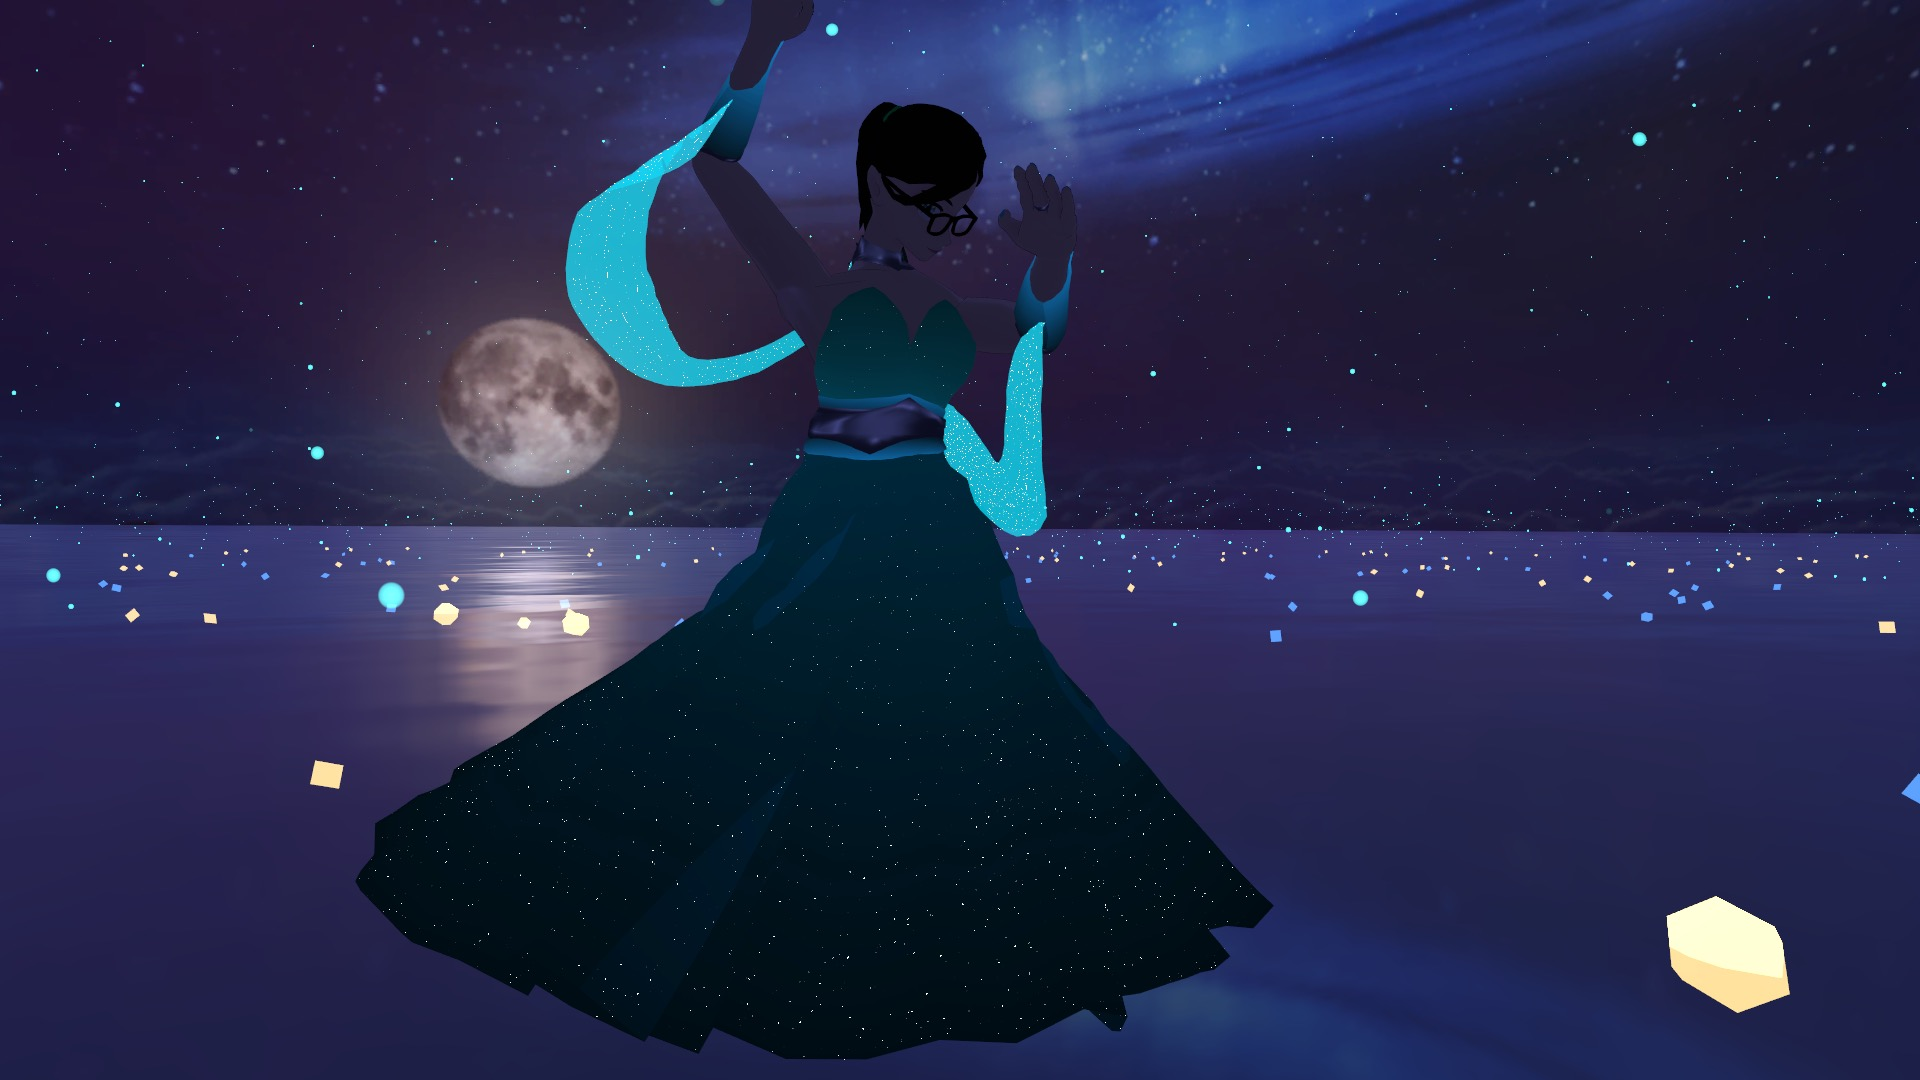 a digital avatar wearing a flowy green dress with cyan arm-tassels dances in front of of the moon in the background.